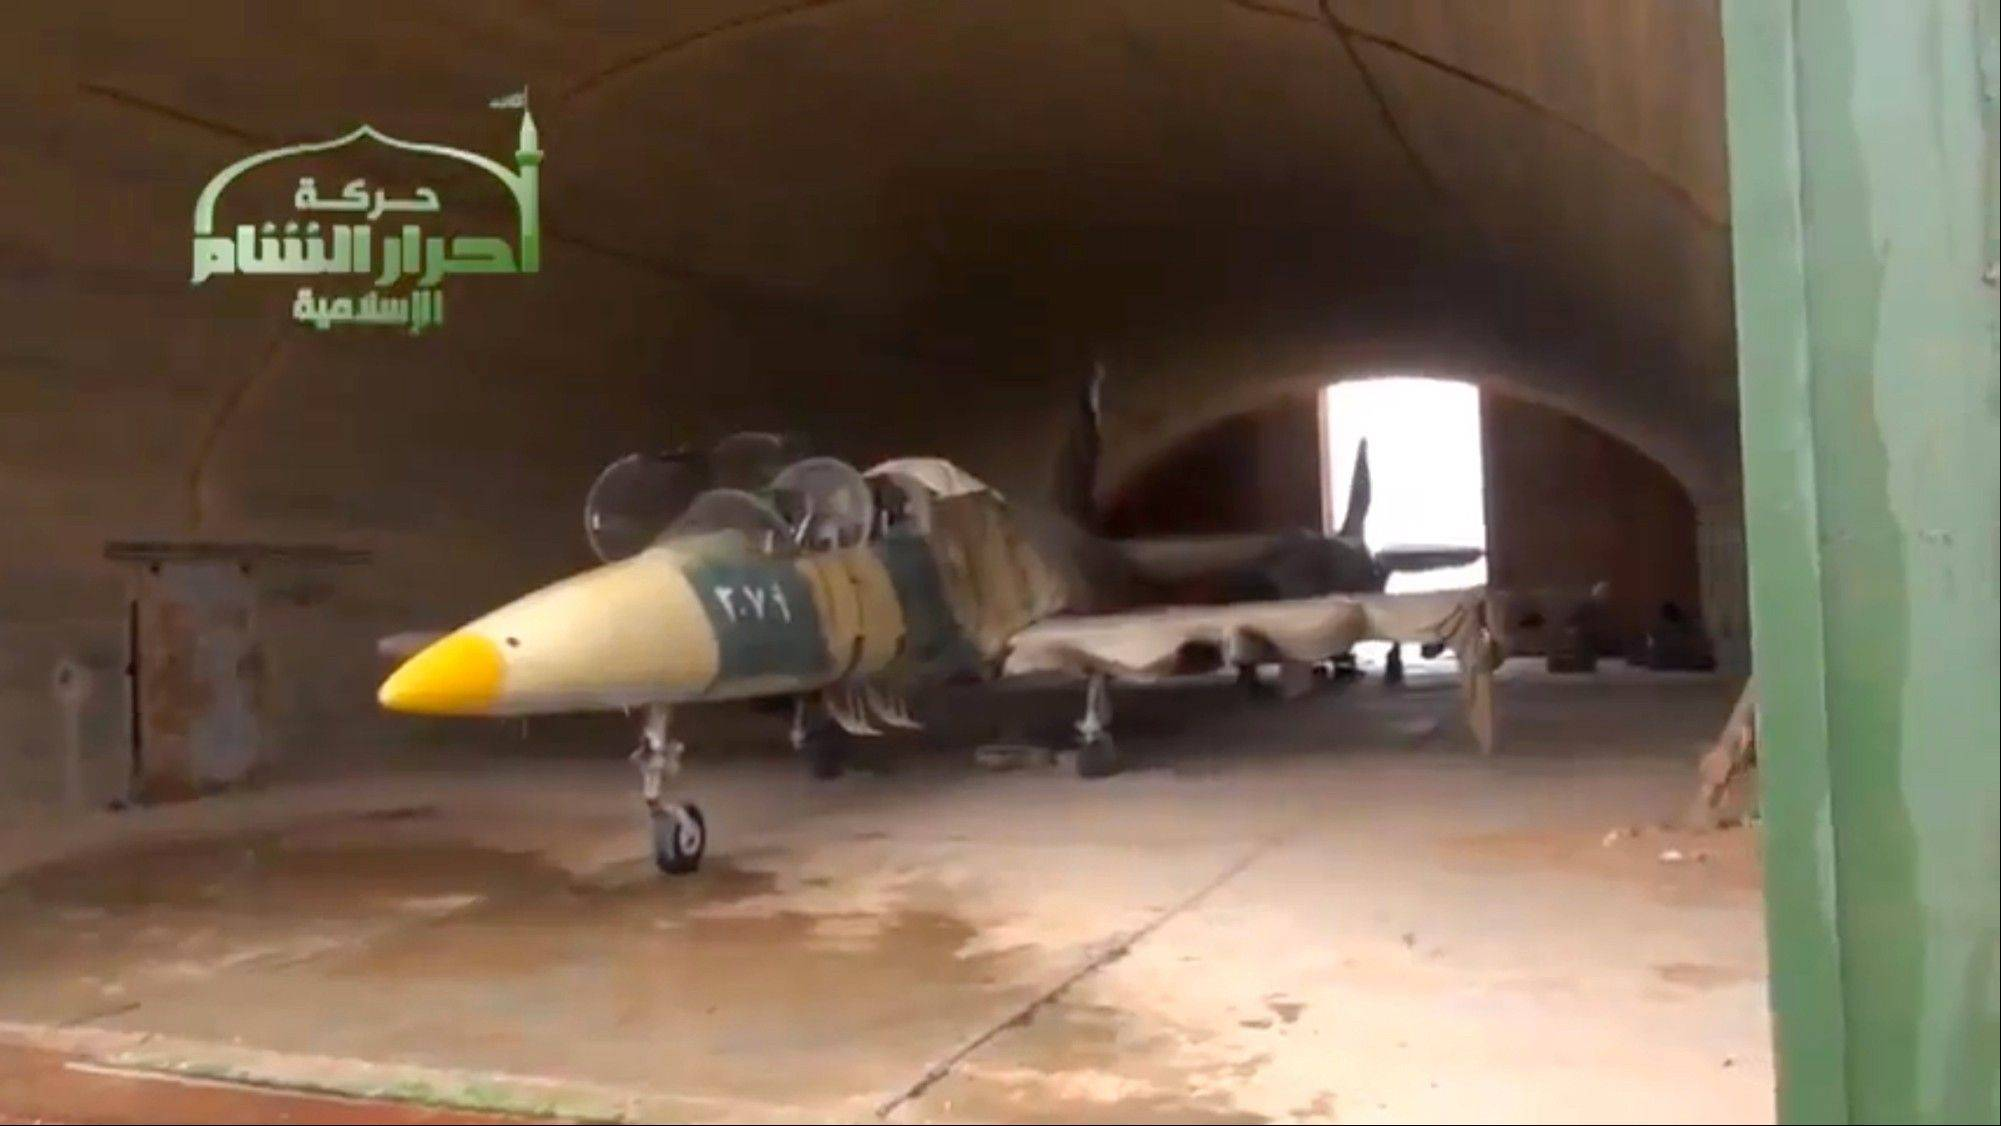 A Syrian fighter jet in a hangar at Jarrah airfield in Aleppo province, which was captured by rebels on Tuesday, their second major strategic victory in as many days, activists said.